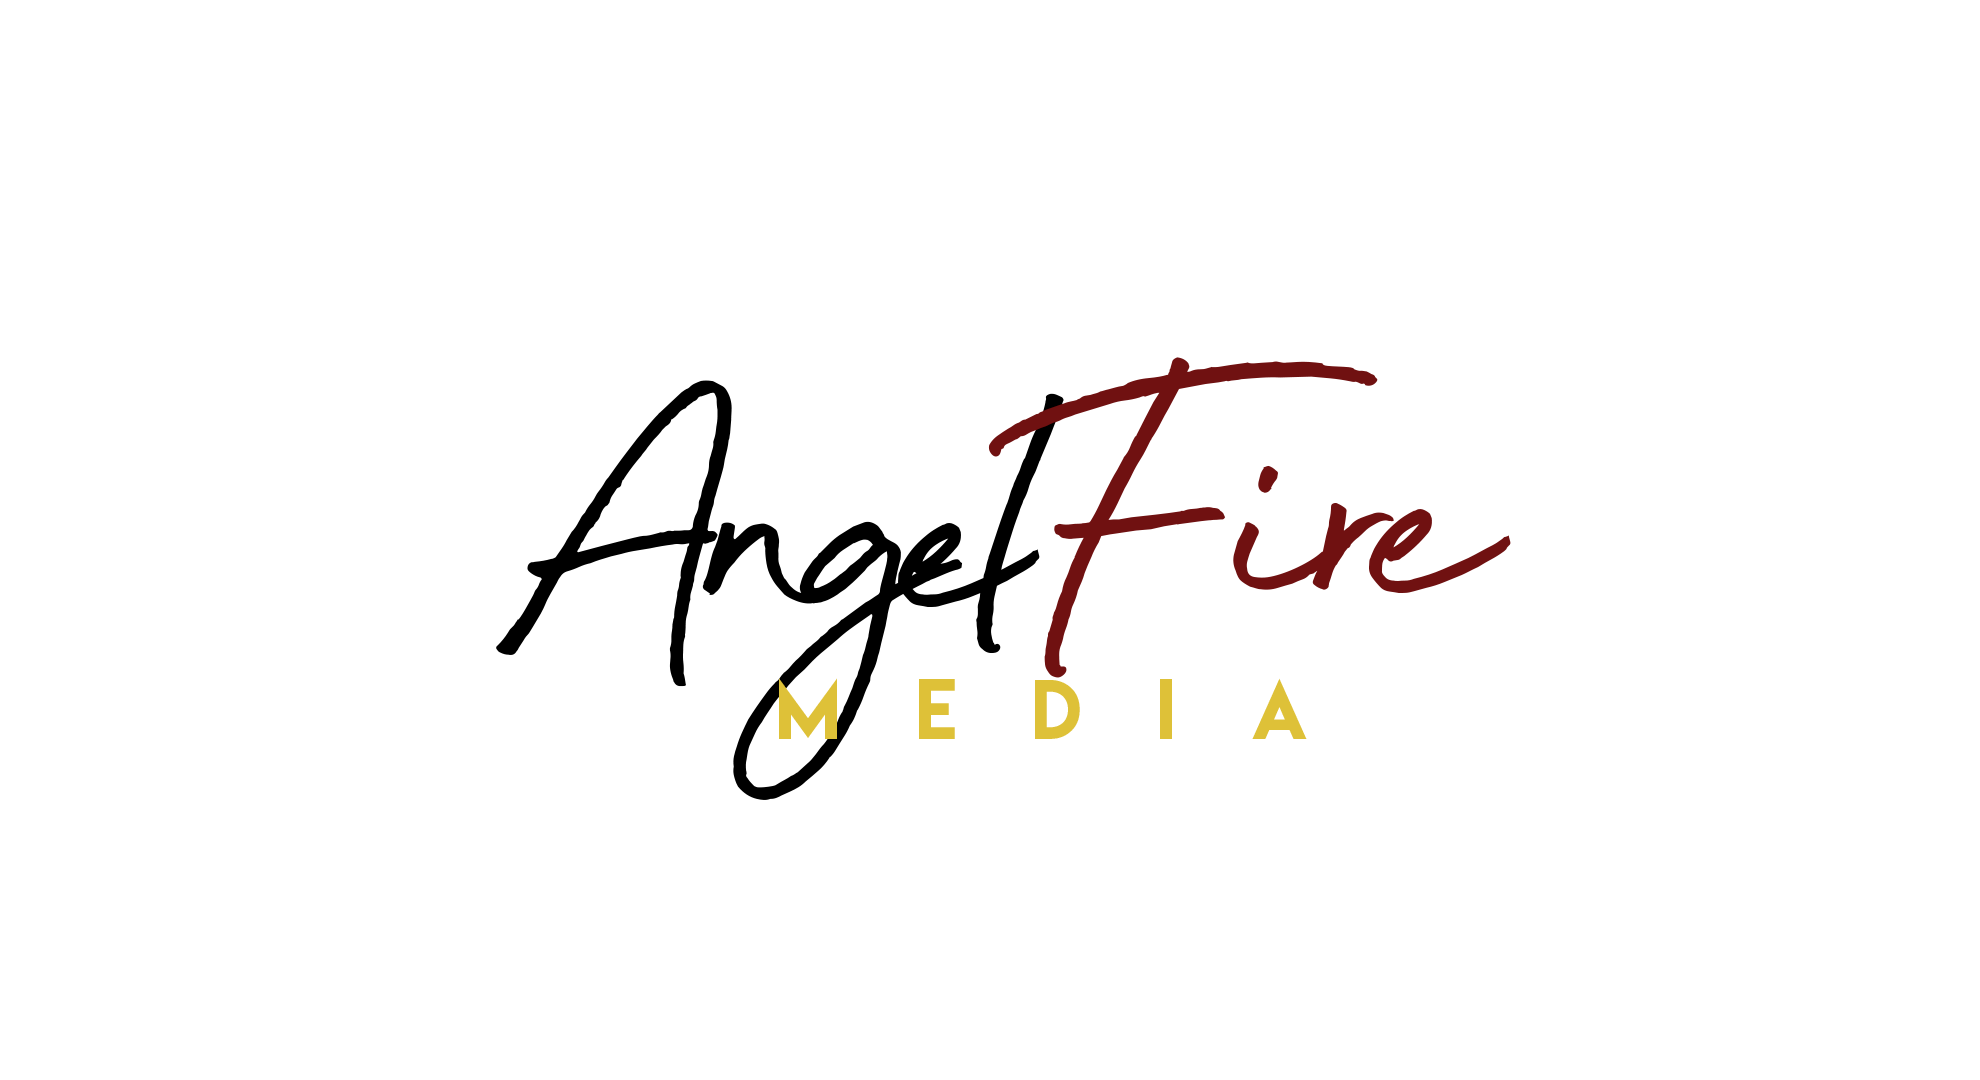 Angel Fire Media